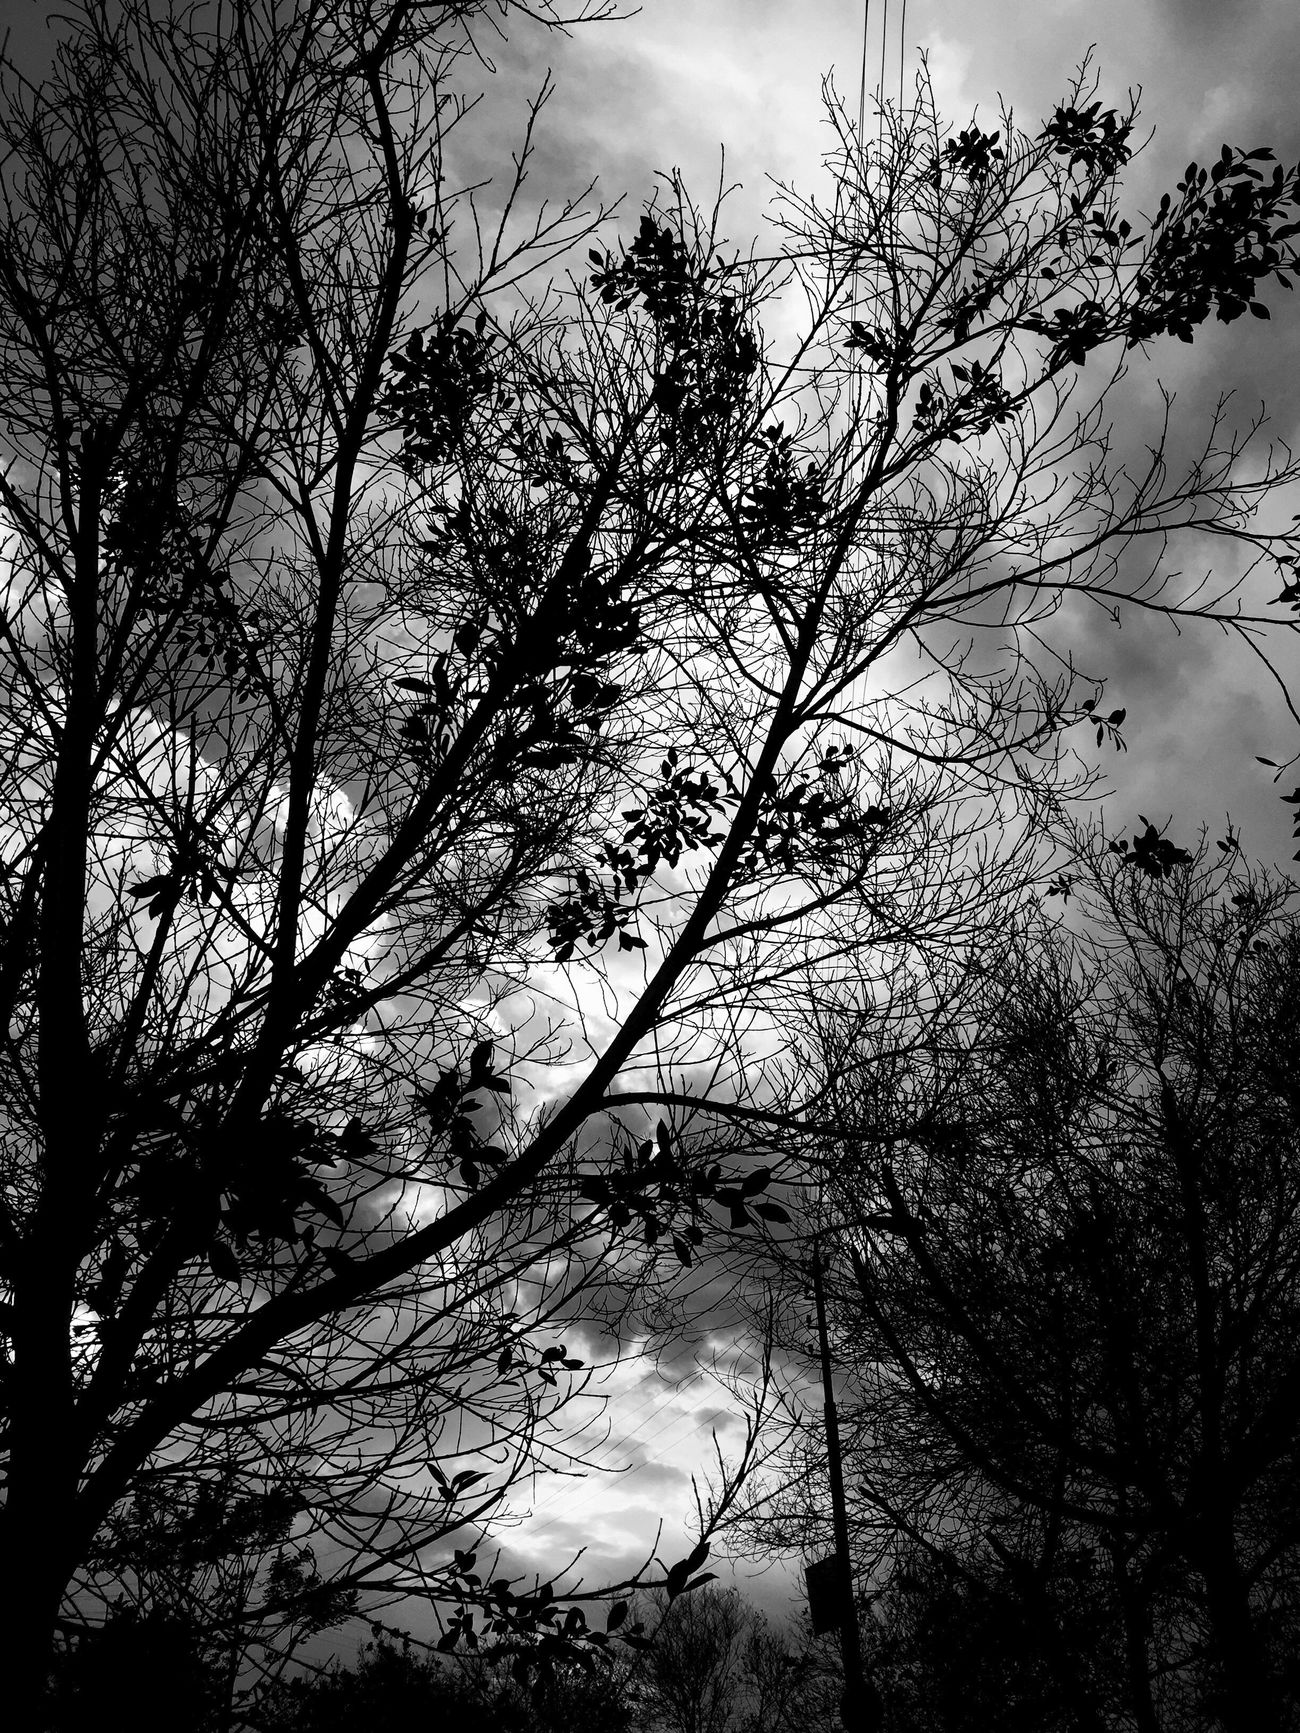 Tree Nature Sky Silhouette Branch Bare Tree Tranquility No People Outdoors Heaven Nature Cloudscape Beauty In Nature Cloud - Sky EyeEm Sky Only Photography Scenics Beauty In Nature Growth Water Low Angle View Day